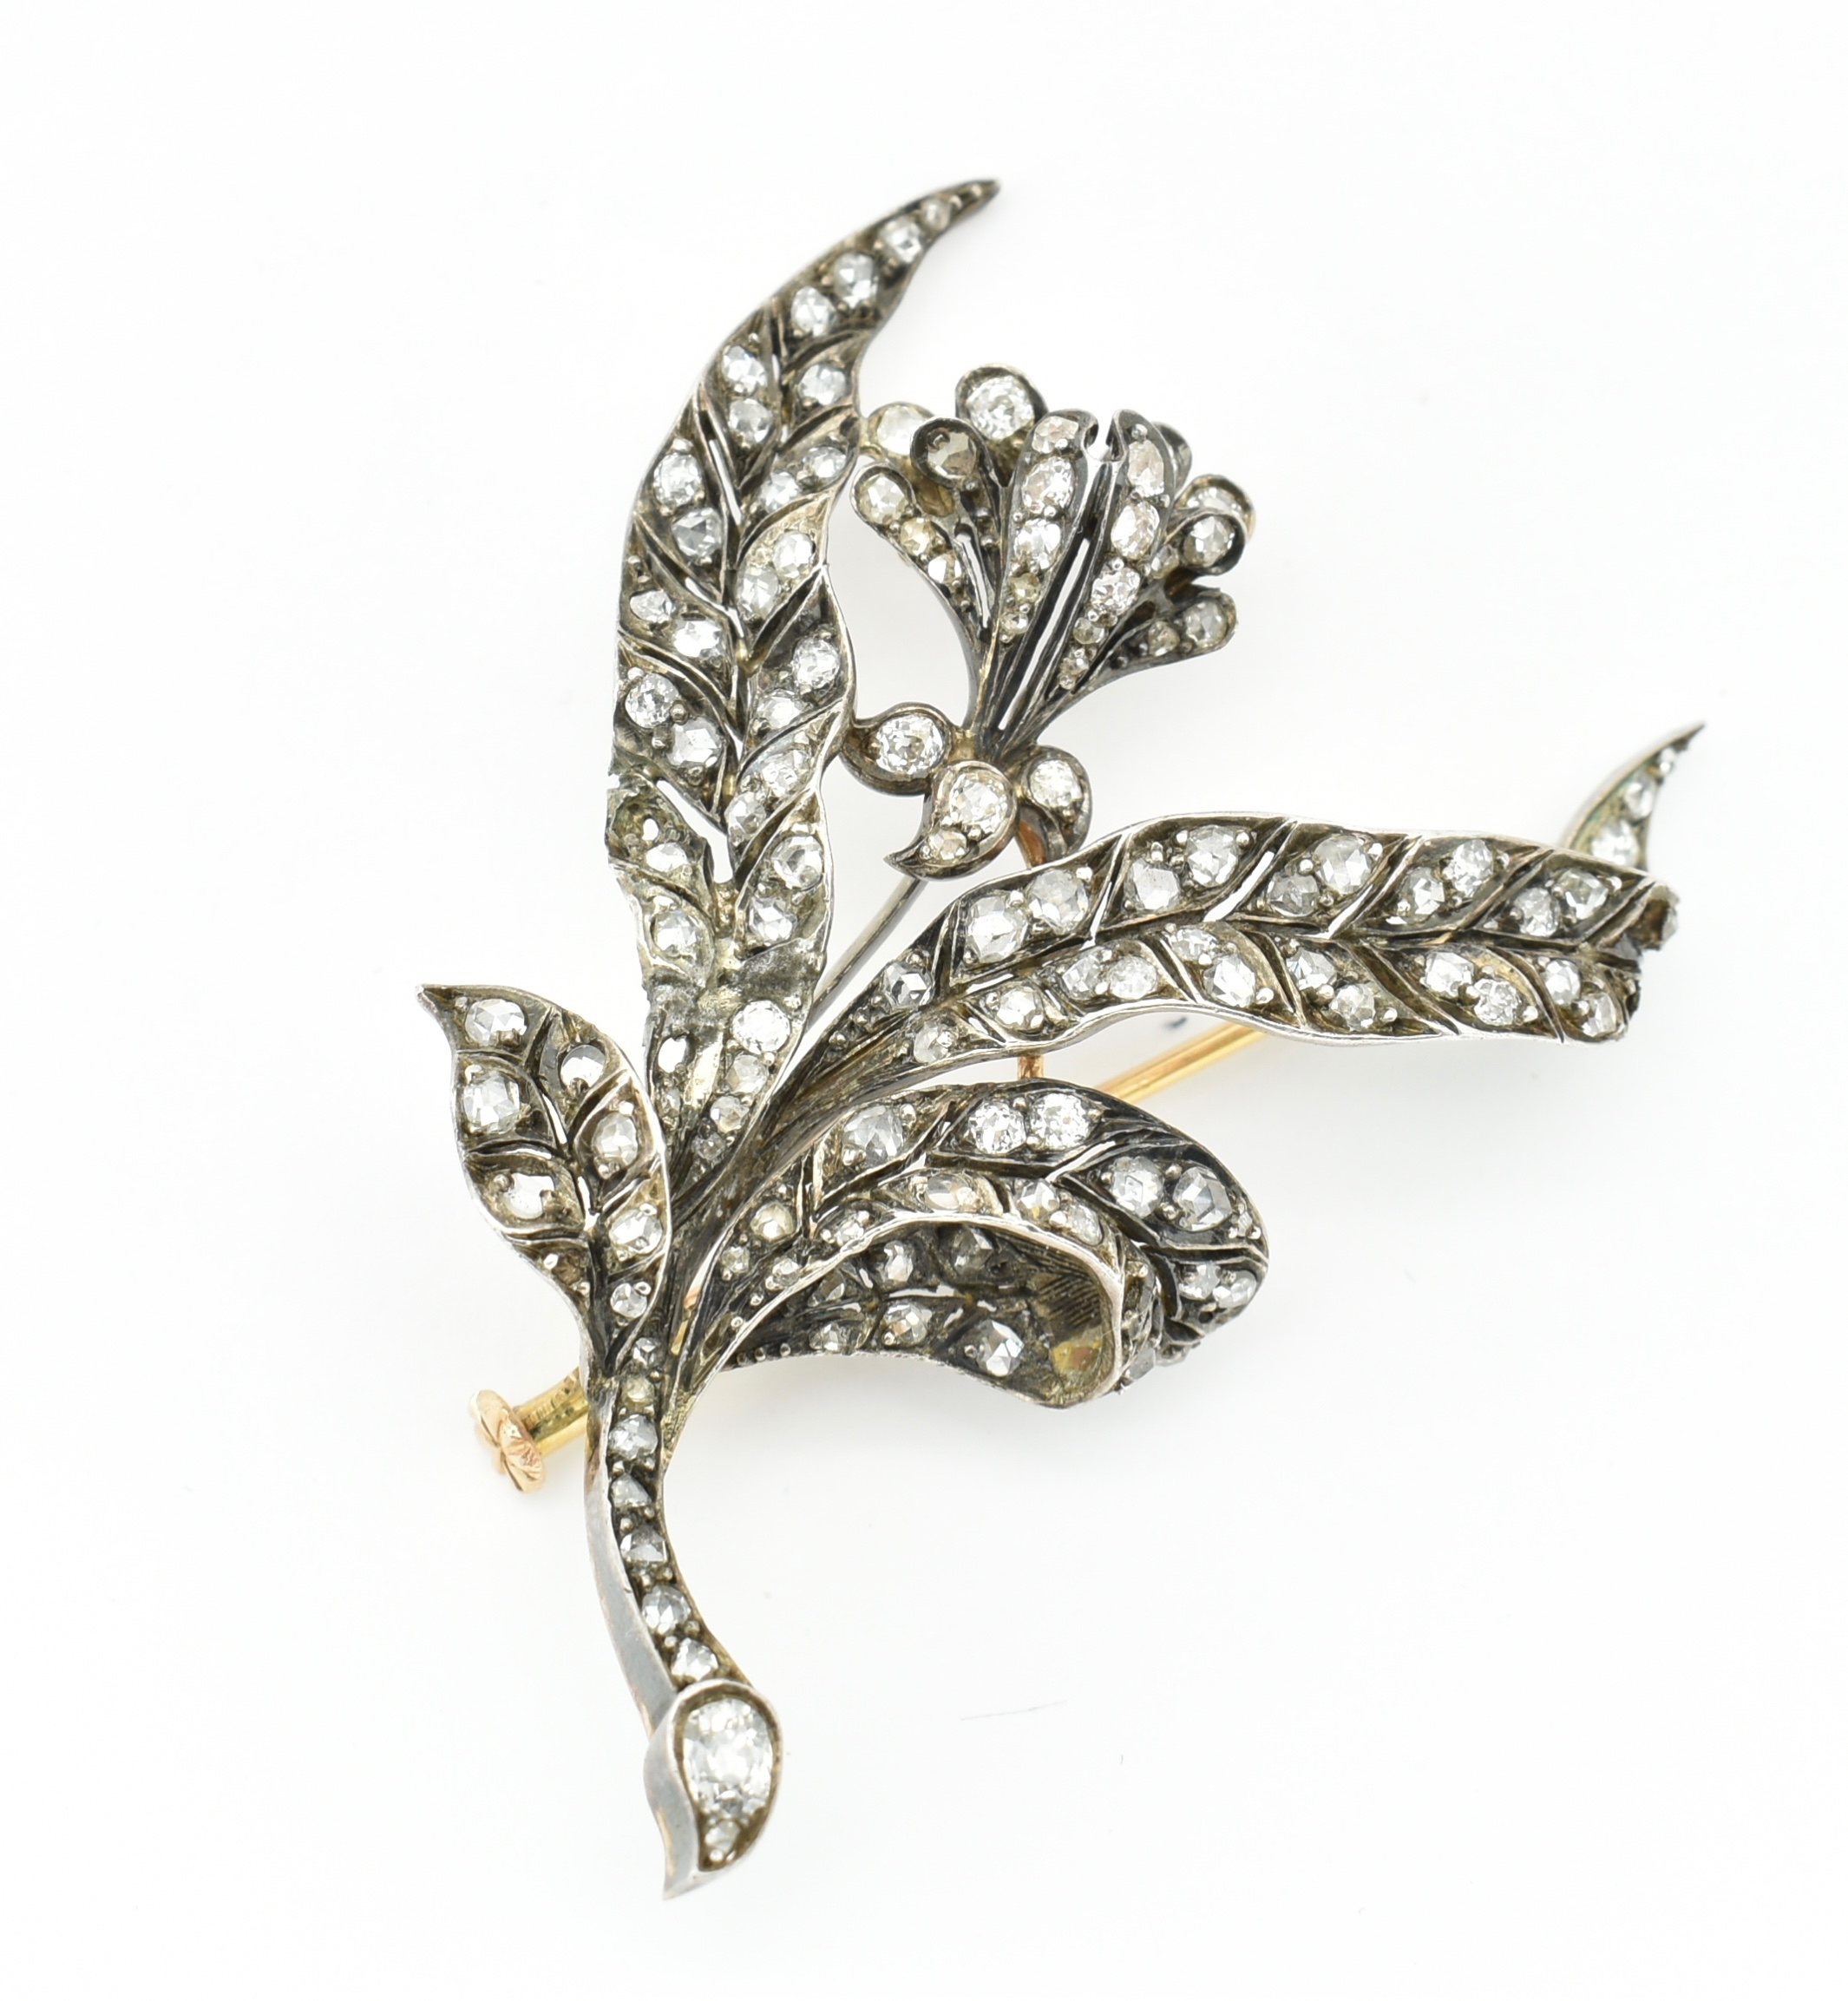 ANTIQUE 18CT GOLD SILVER & DIAMOND FLORAL BROOCH PIN